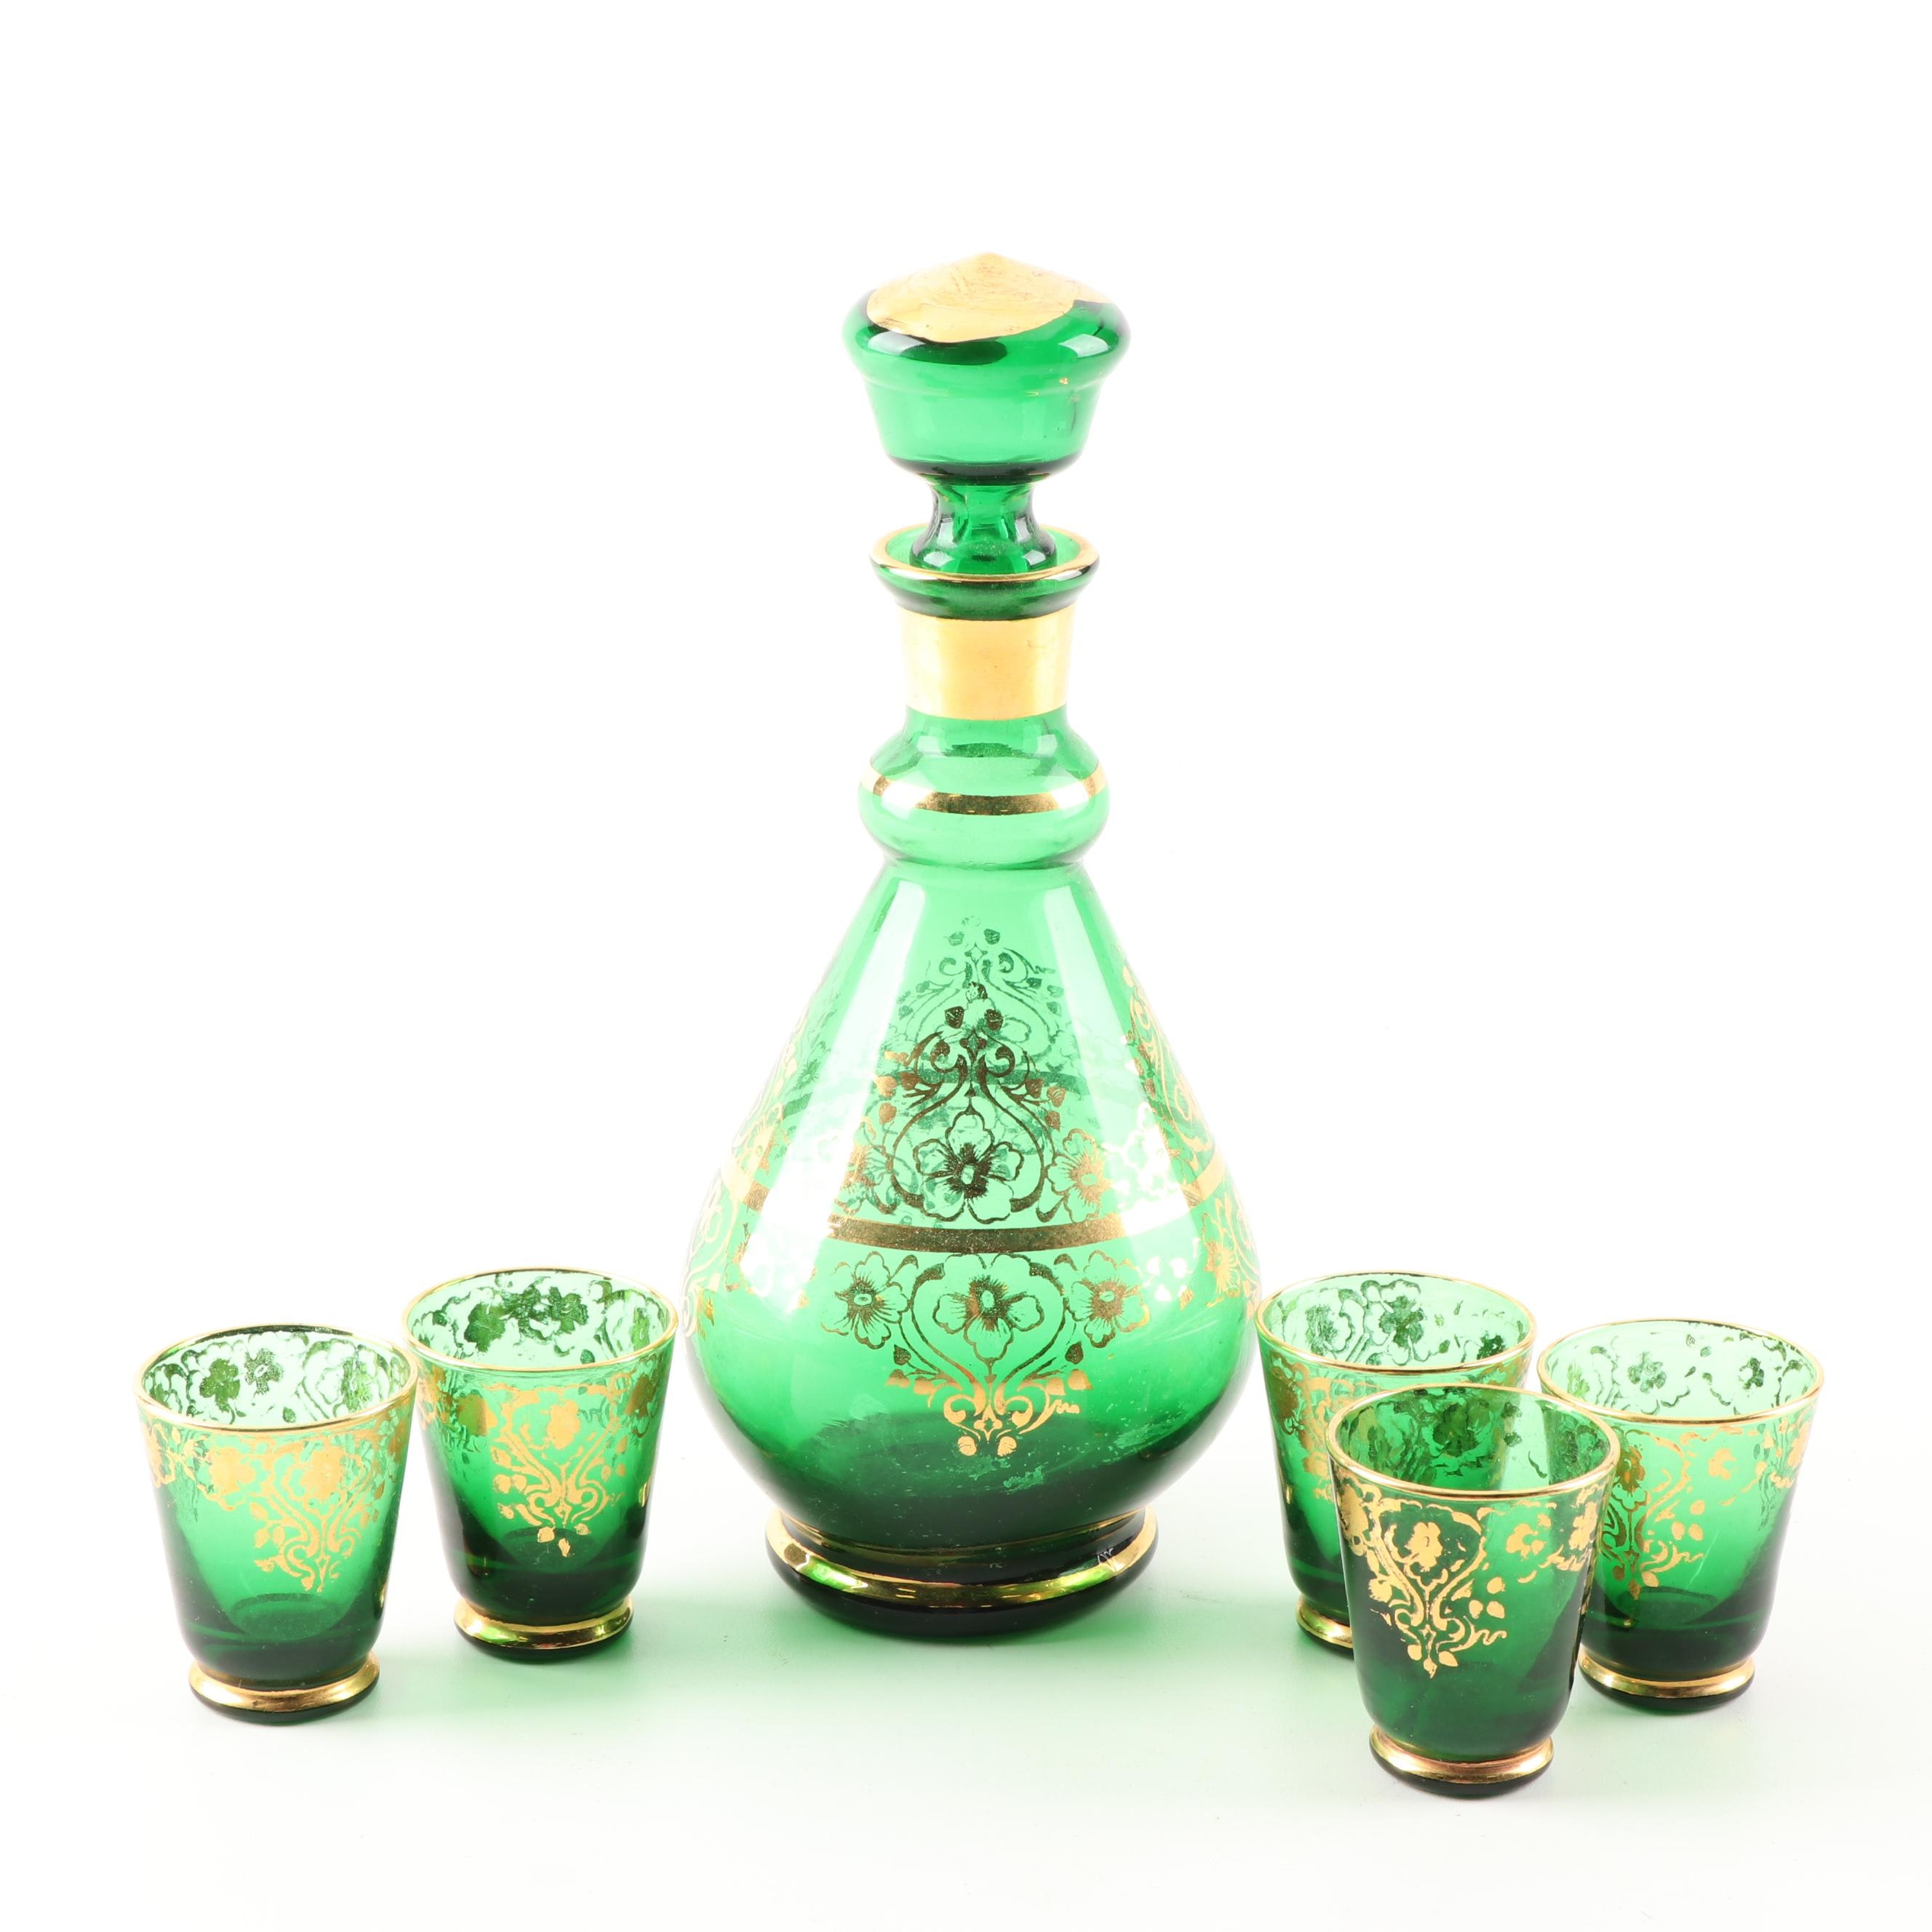 Green Glass Decanter and Cordial Glasses with Gold Tone Accents